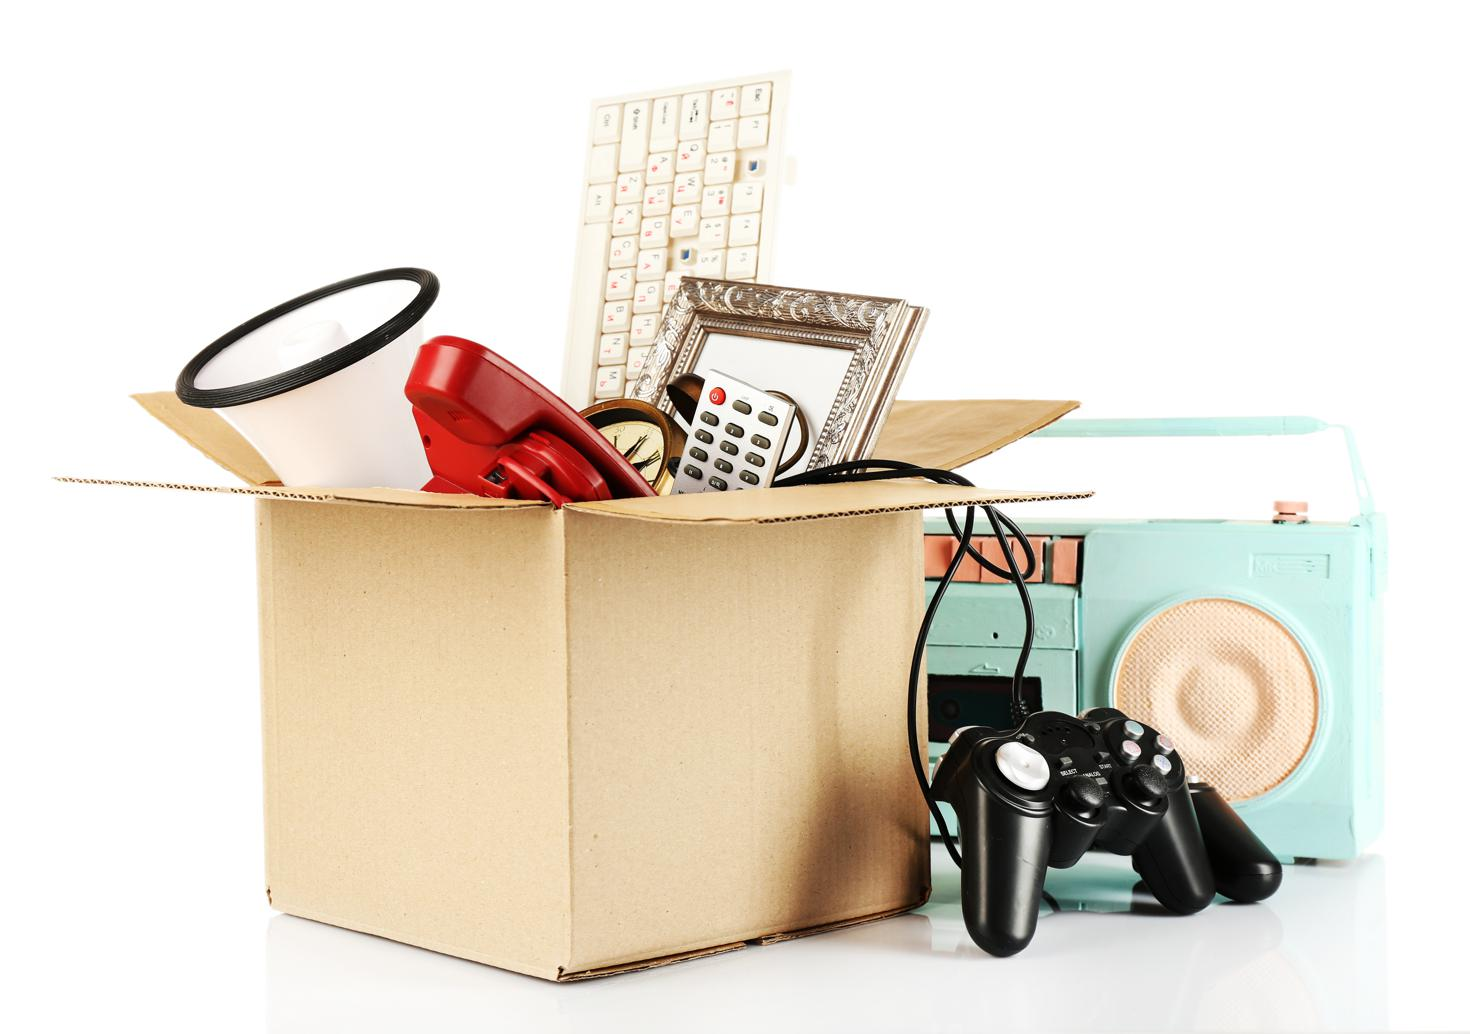 box of items commonly found in storage units